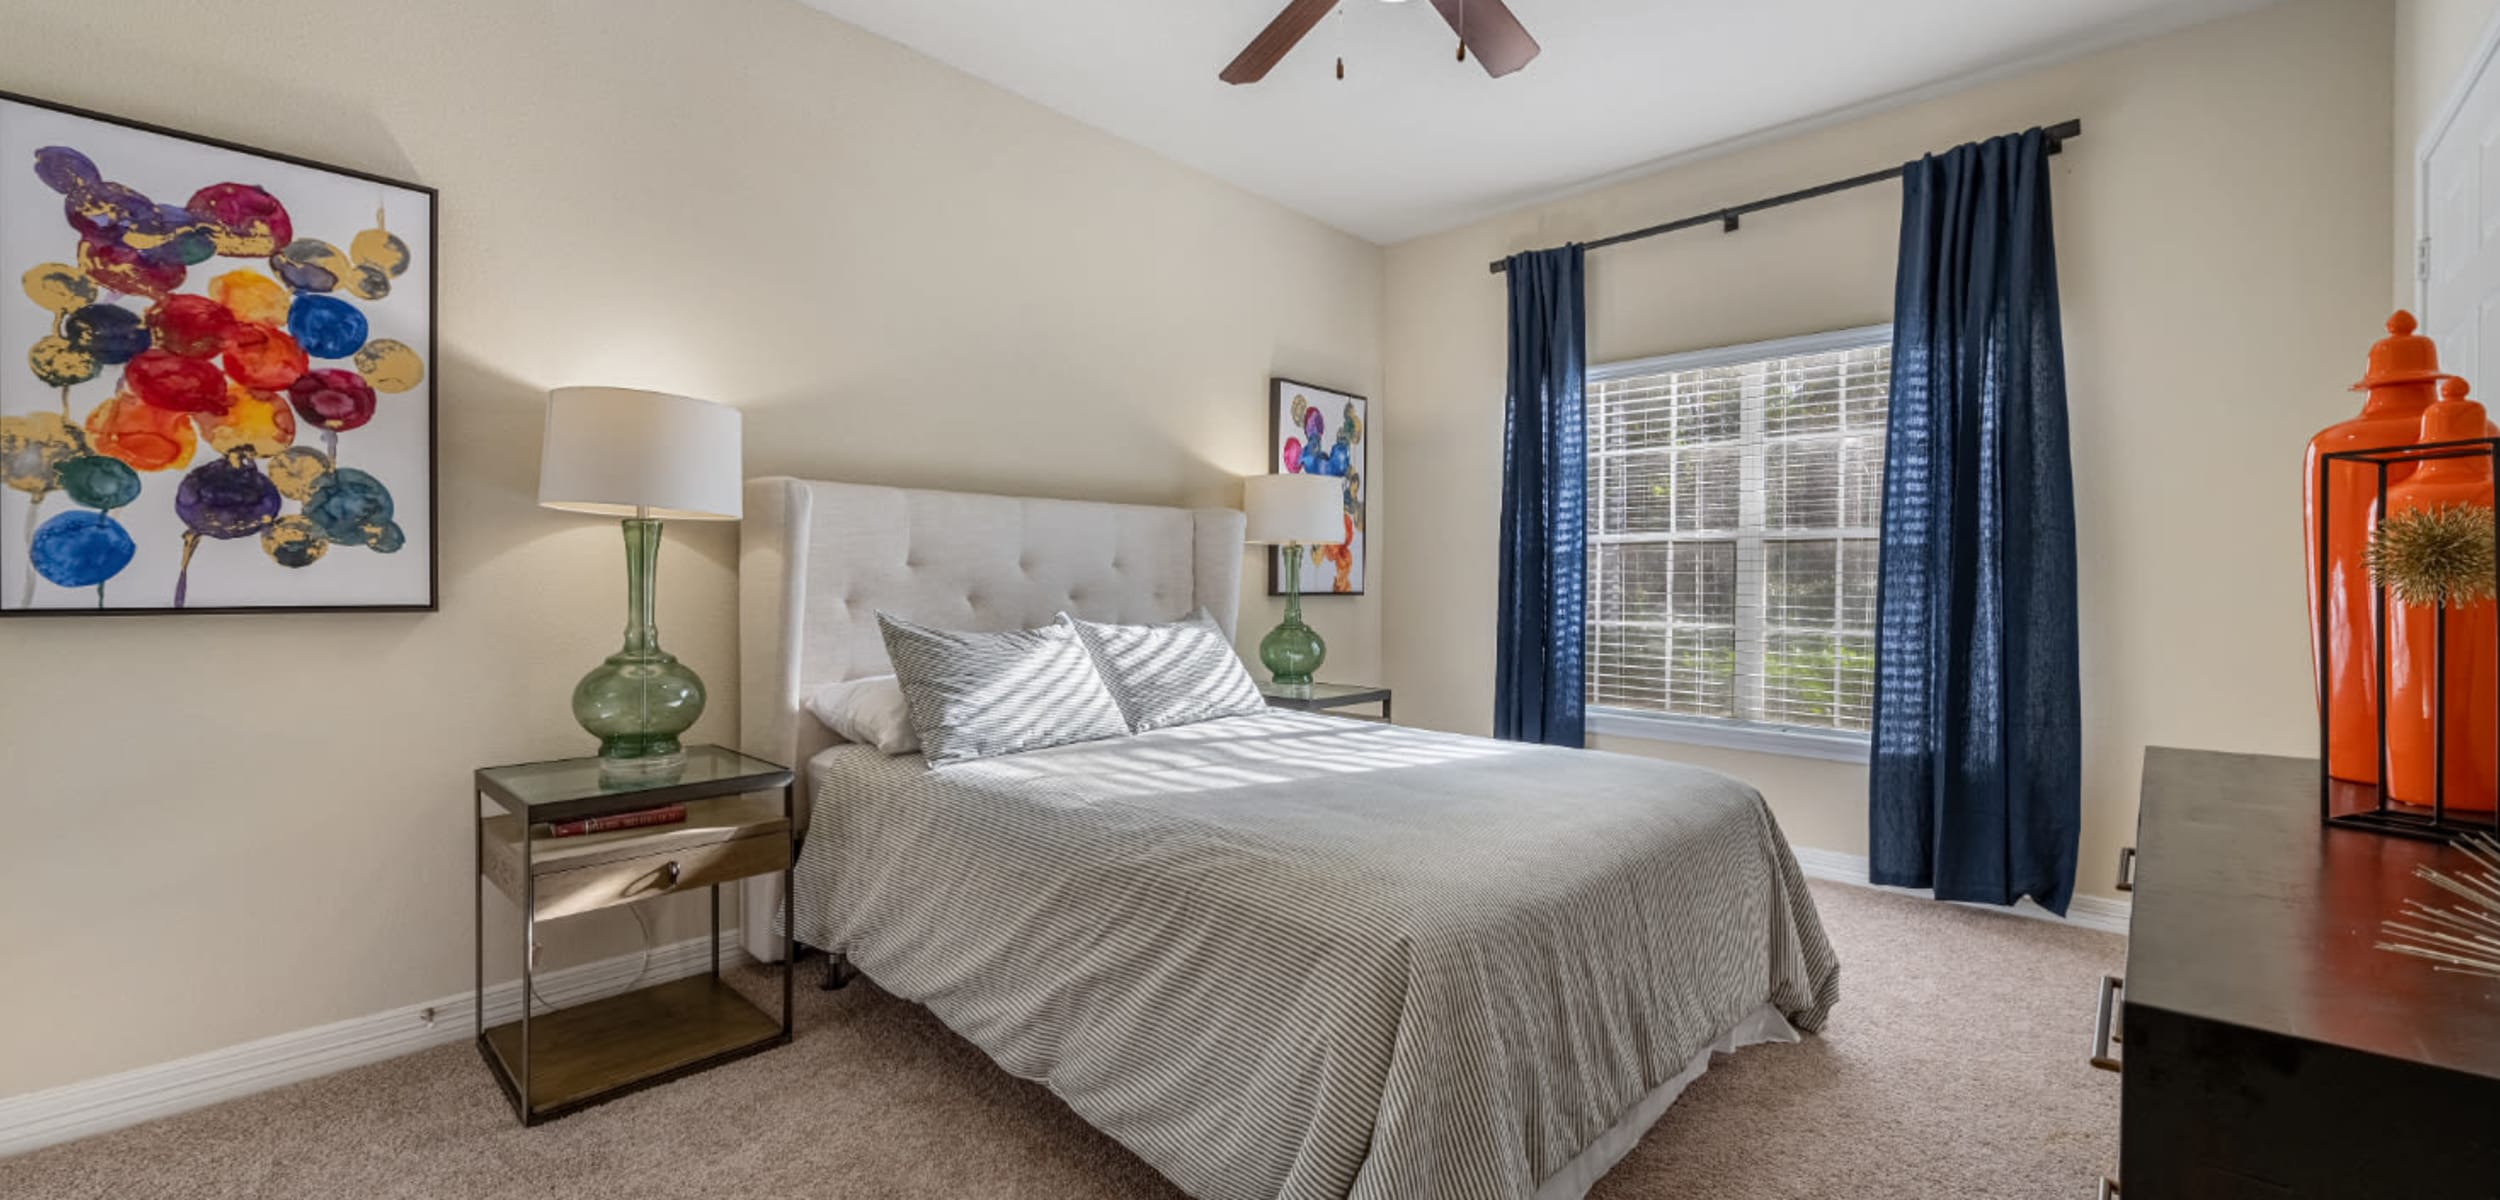 Carpeted spacious bedroom with big window at Marquis at Kingwood in Kingwood, Texas